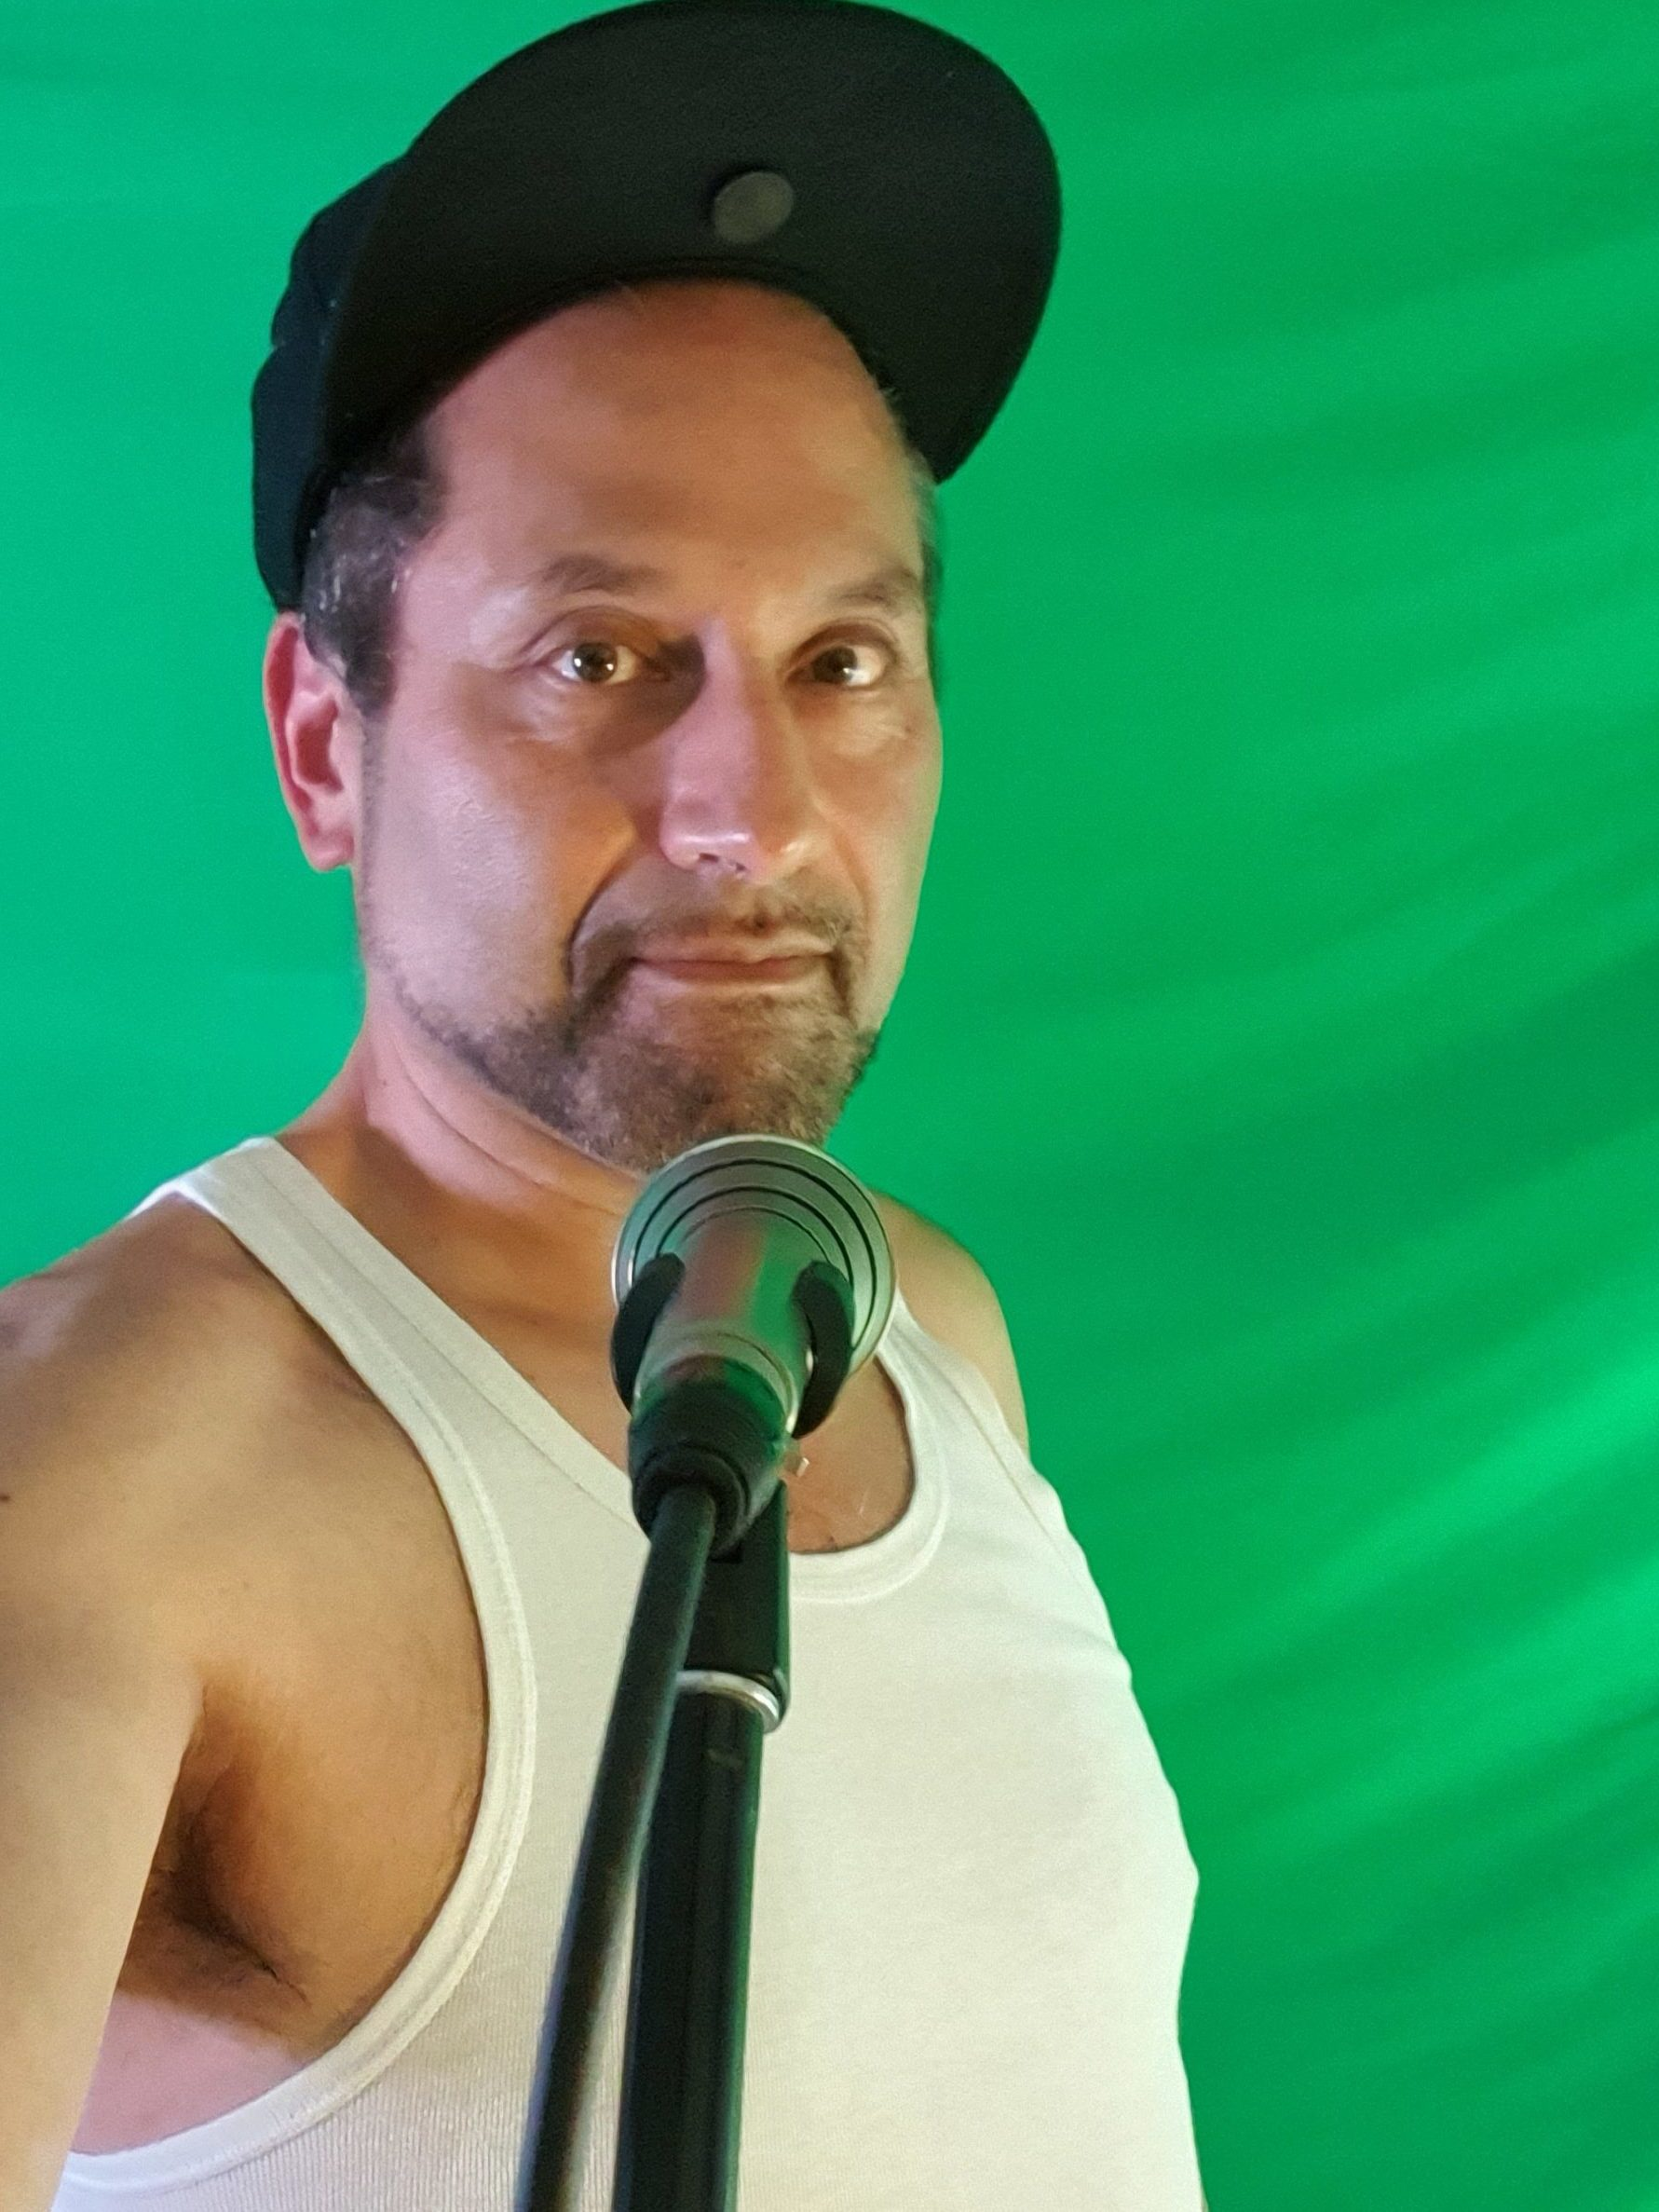 Green Screen selfie